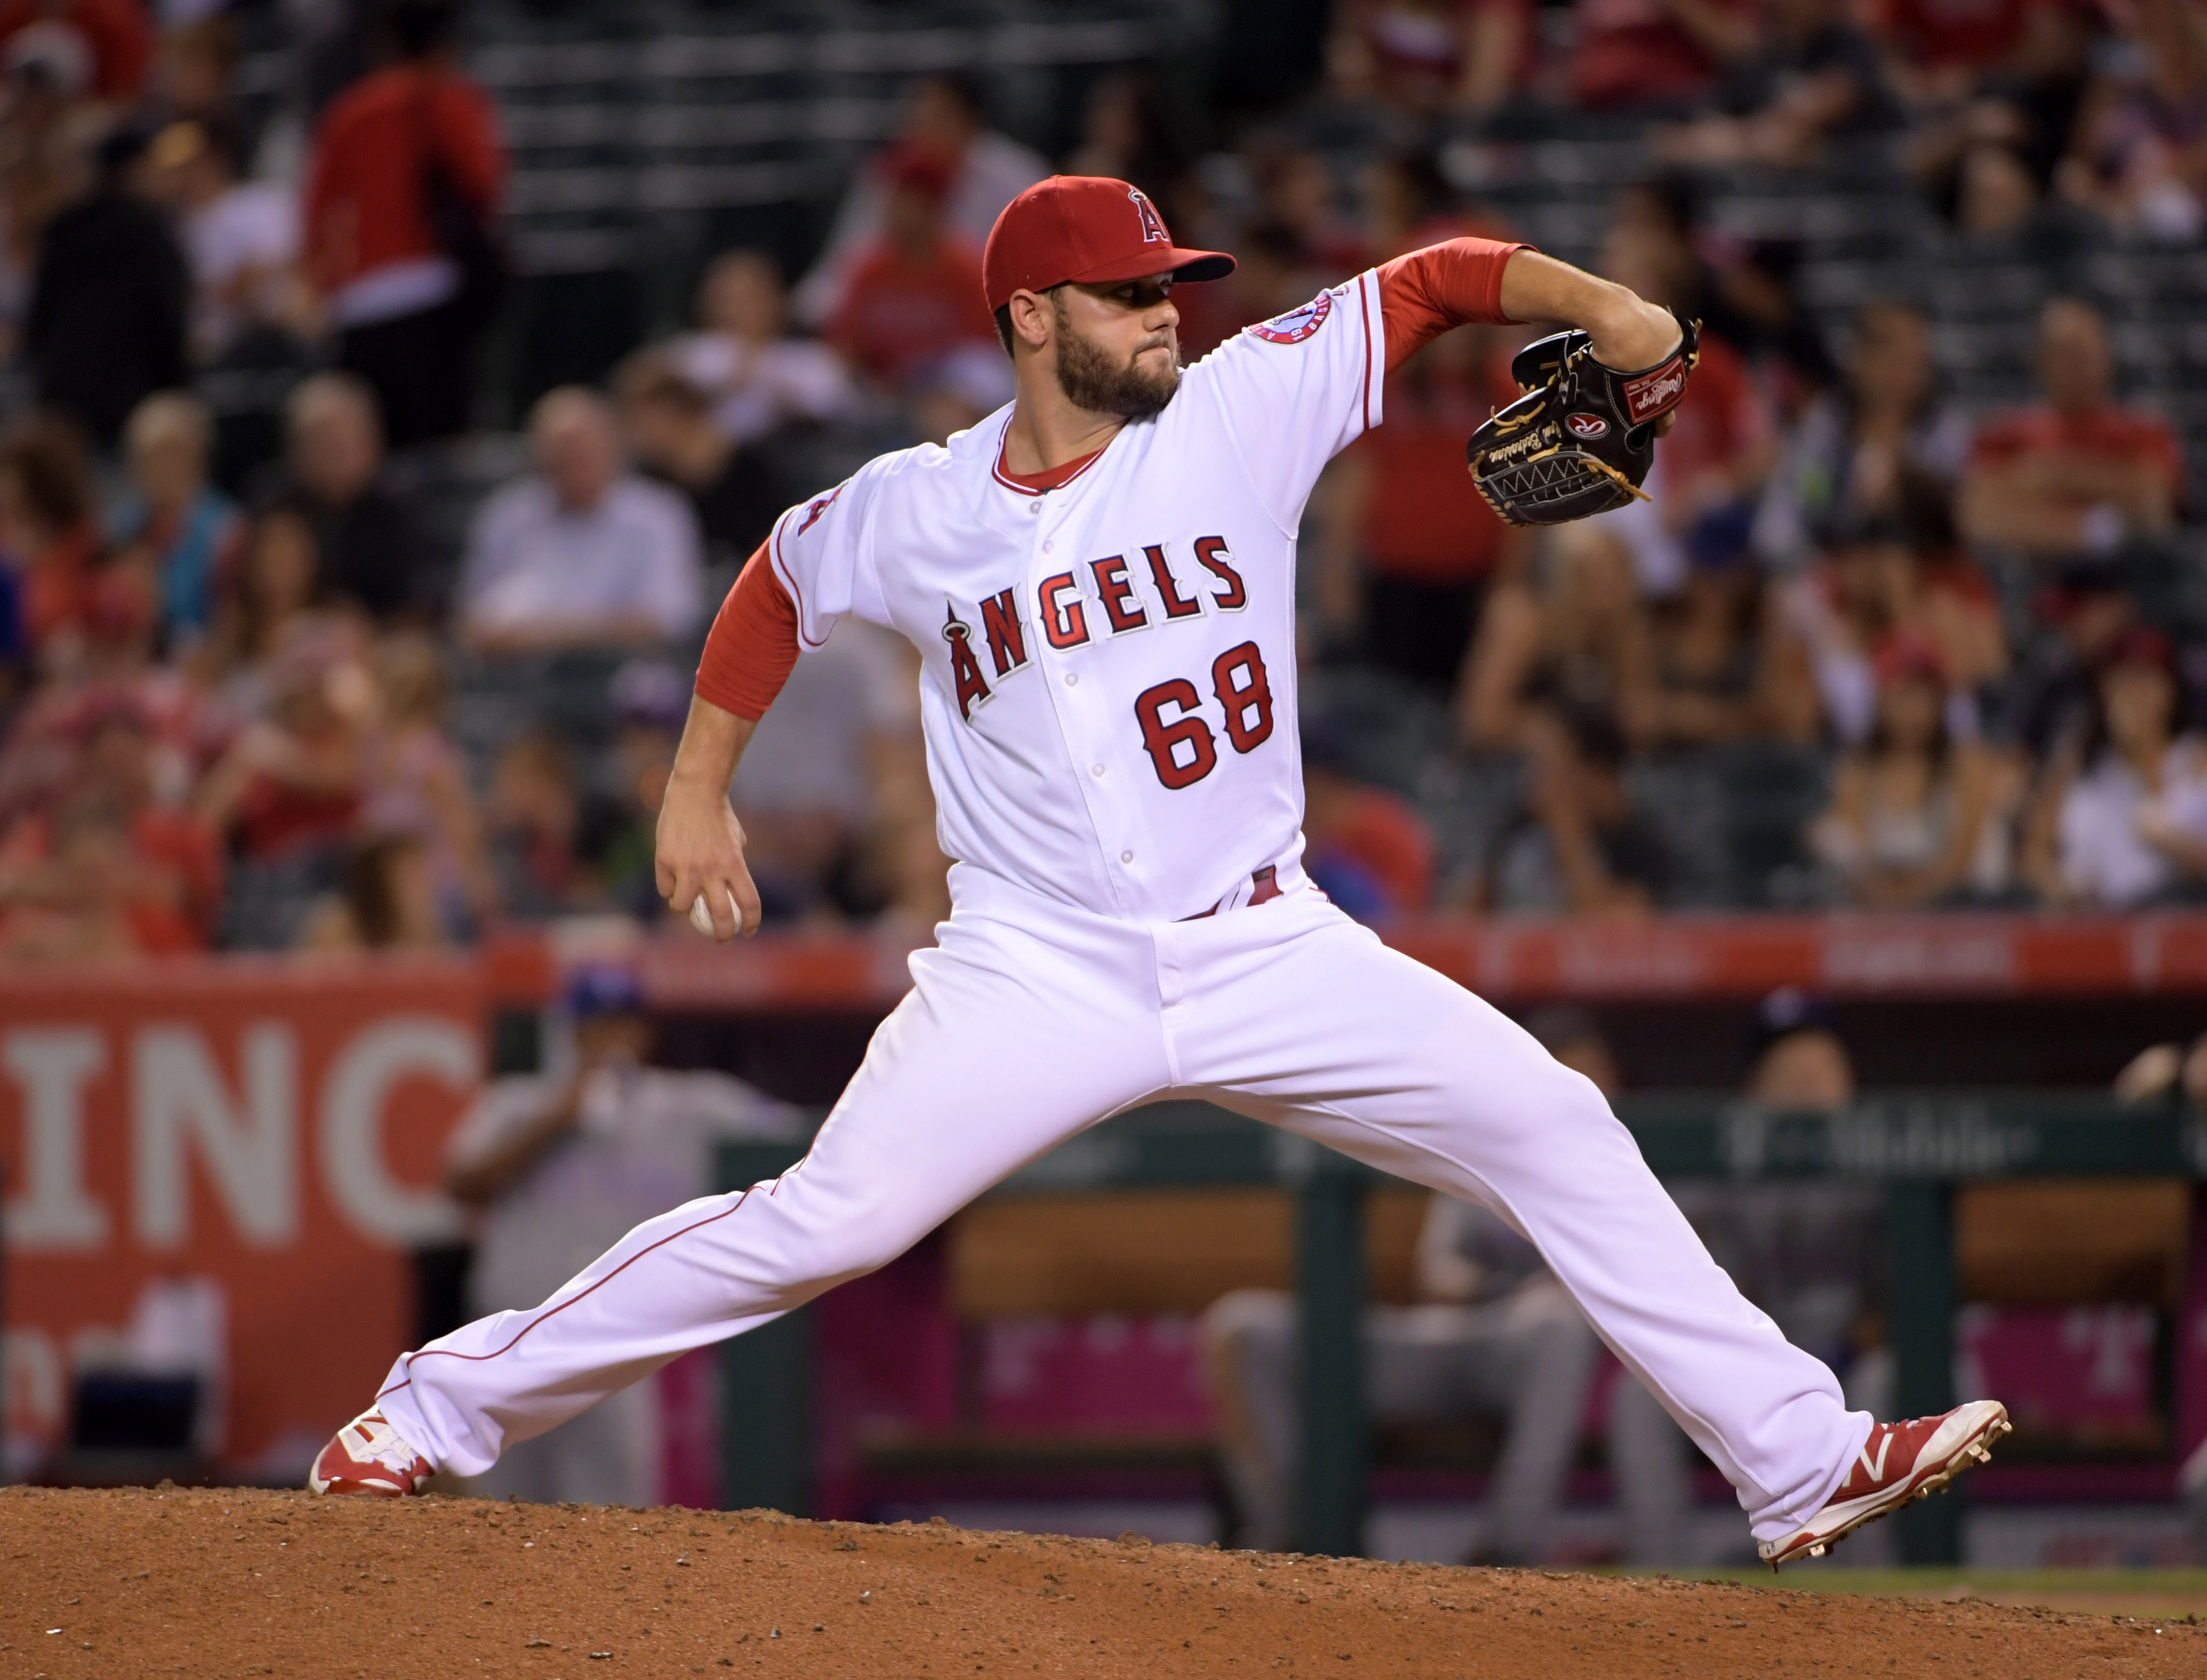 Cam Bedrosian is one of baseball's best young closers